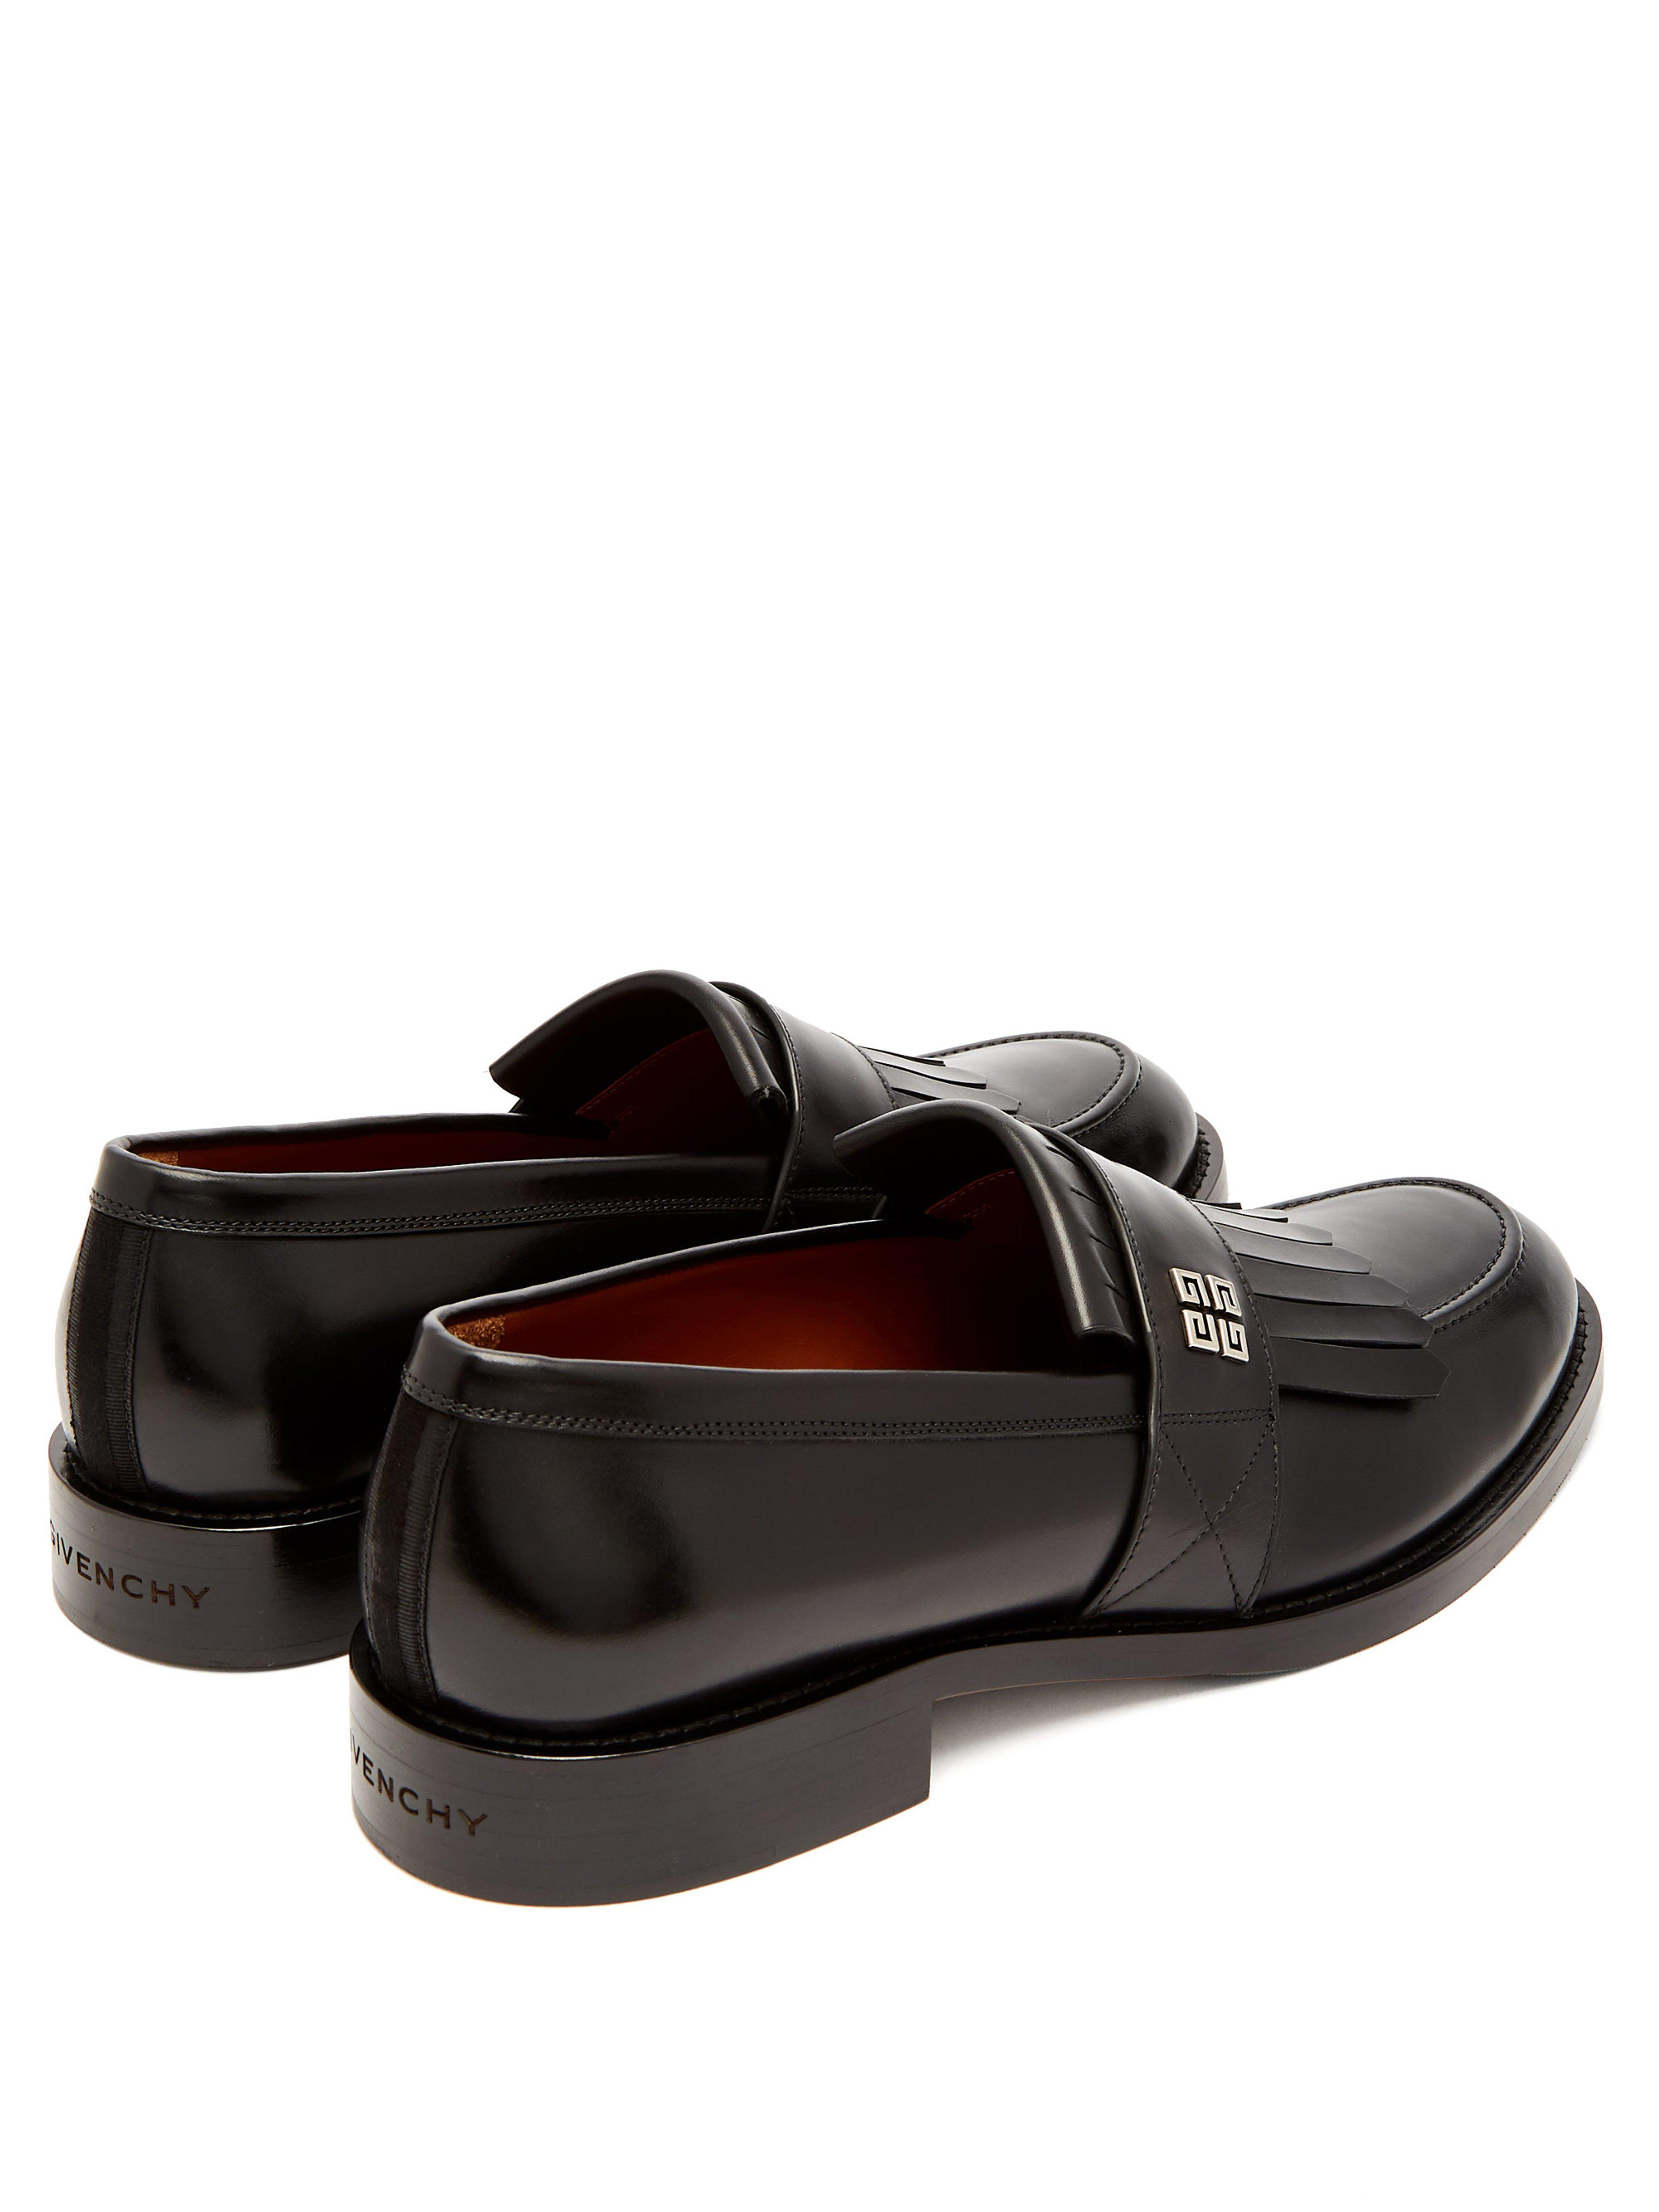 Givenchy 4g Logo Fringed Leather Loafers in Black for Men